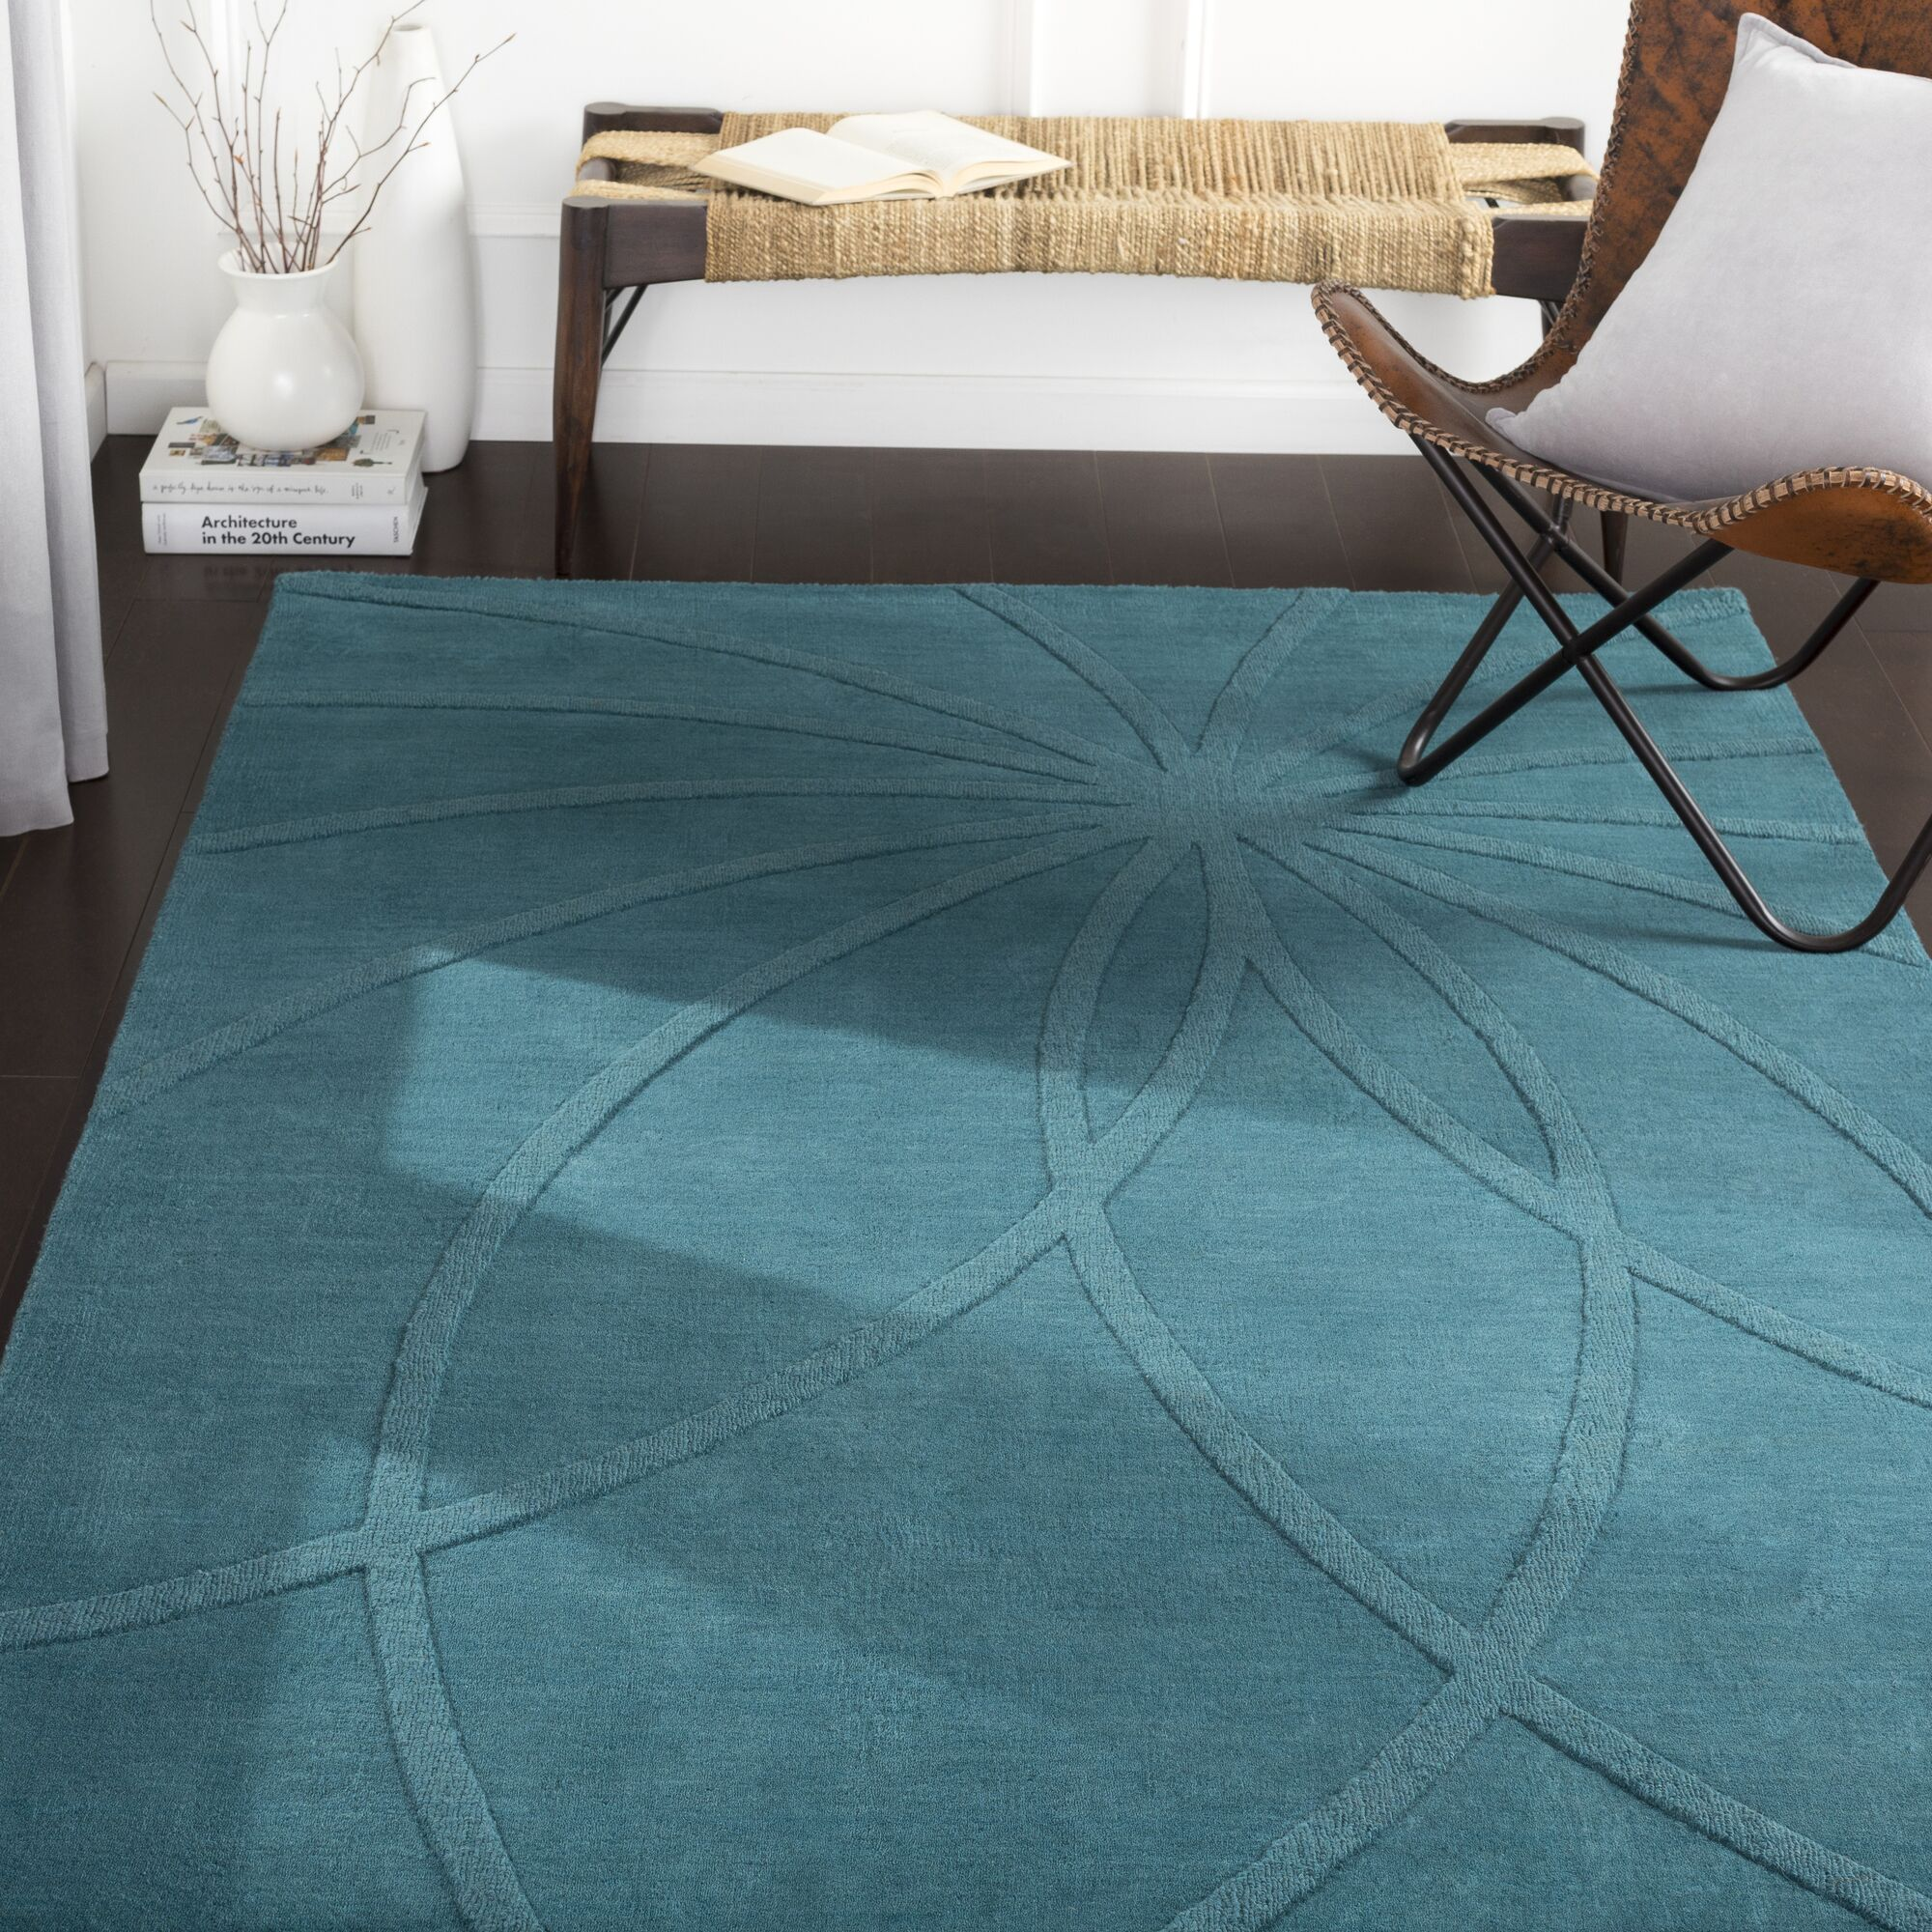 Dorthea Handwoven Wool Teal Area Rug Rug Size: Rectangle 2' x 3'